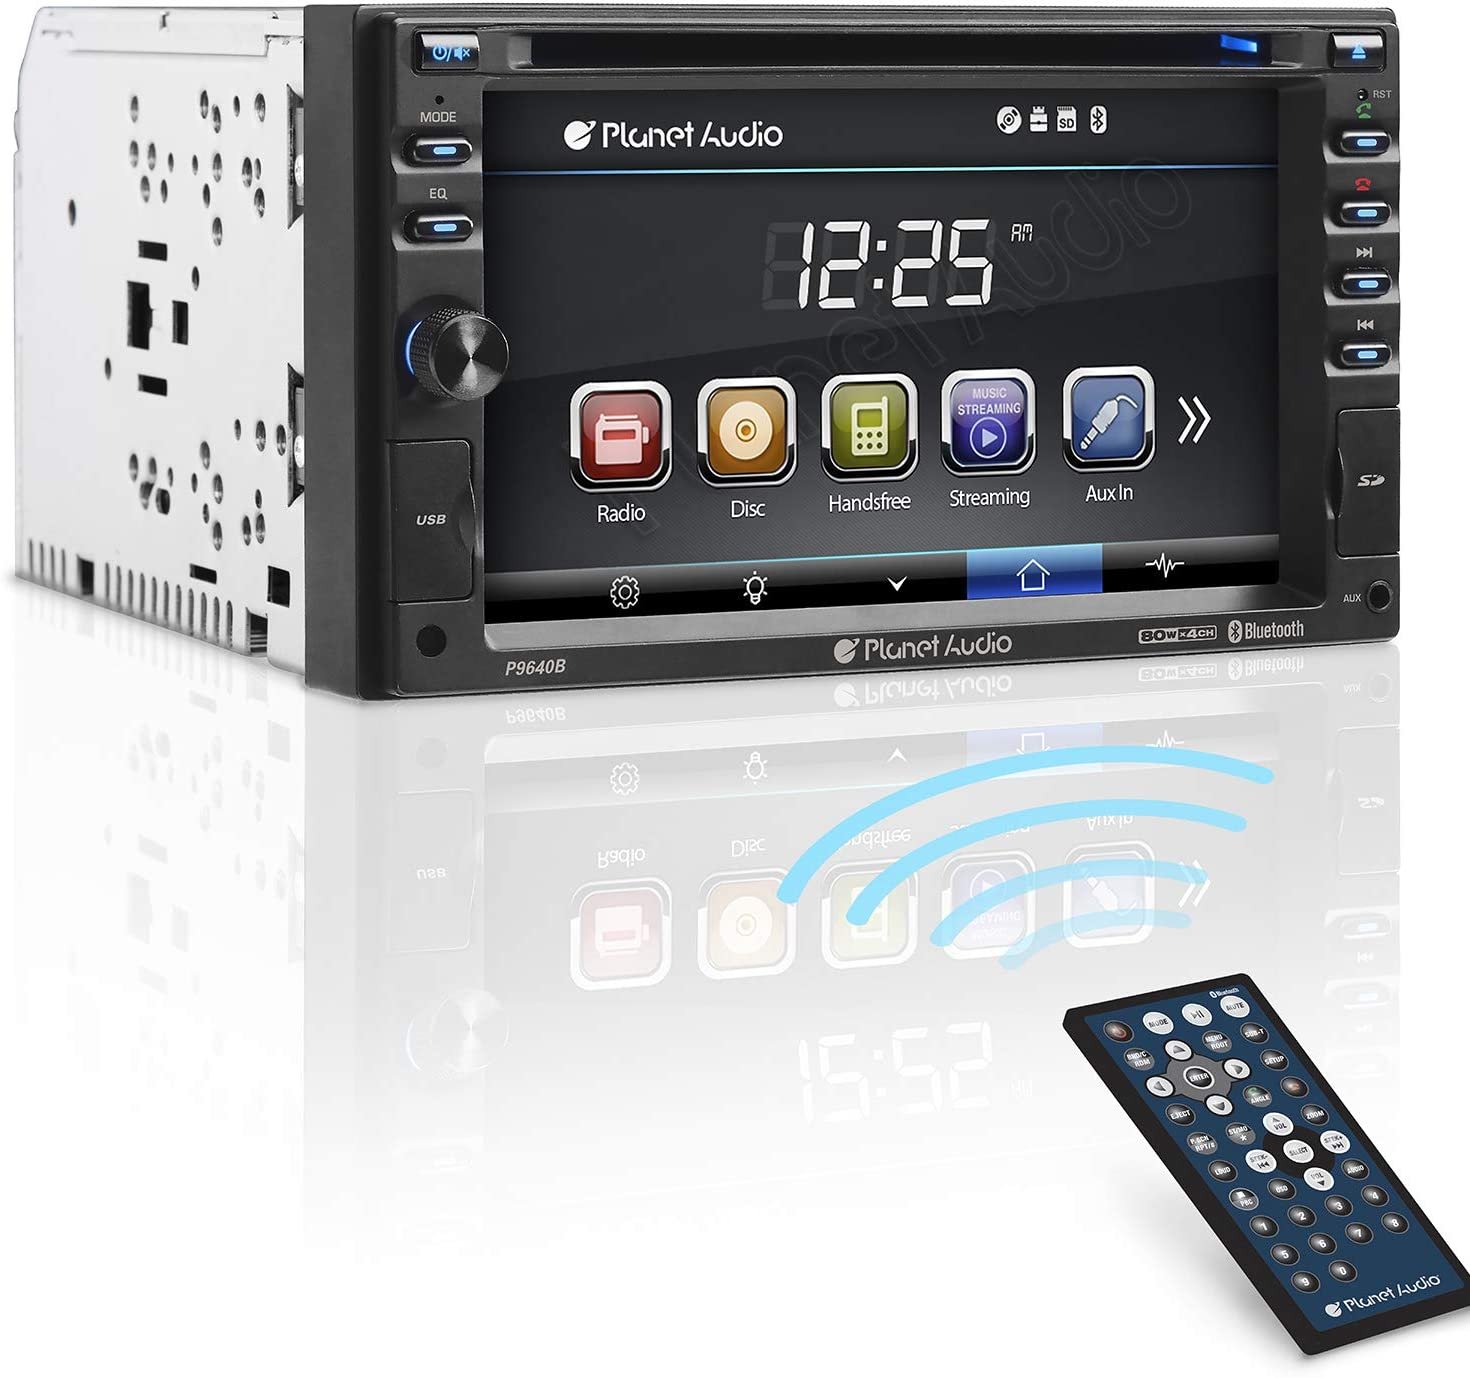 Planet Audio P9640B Touch Screen Car Stereo